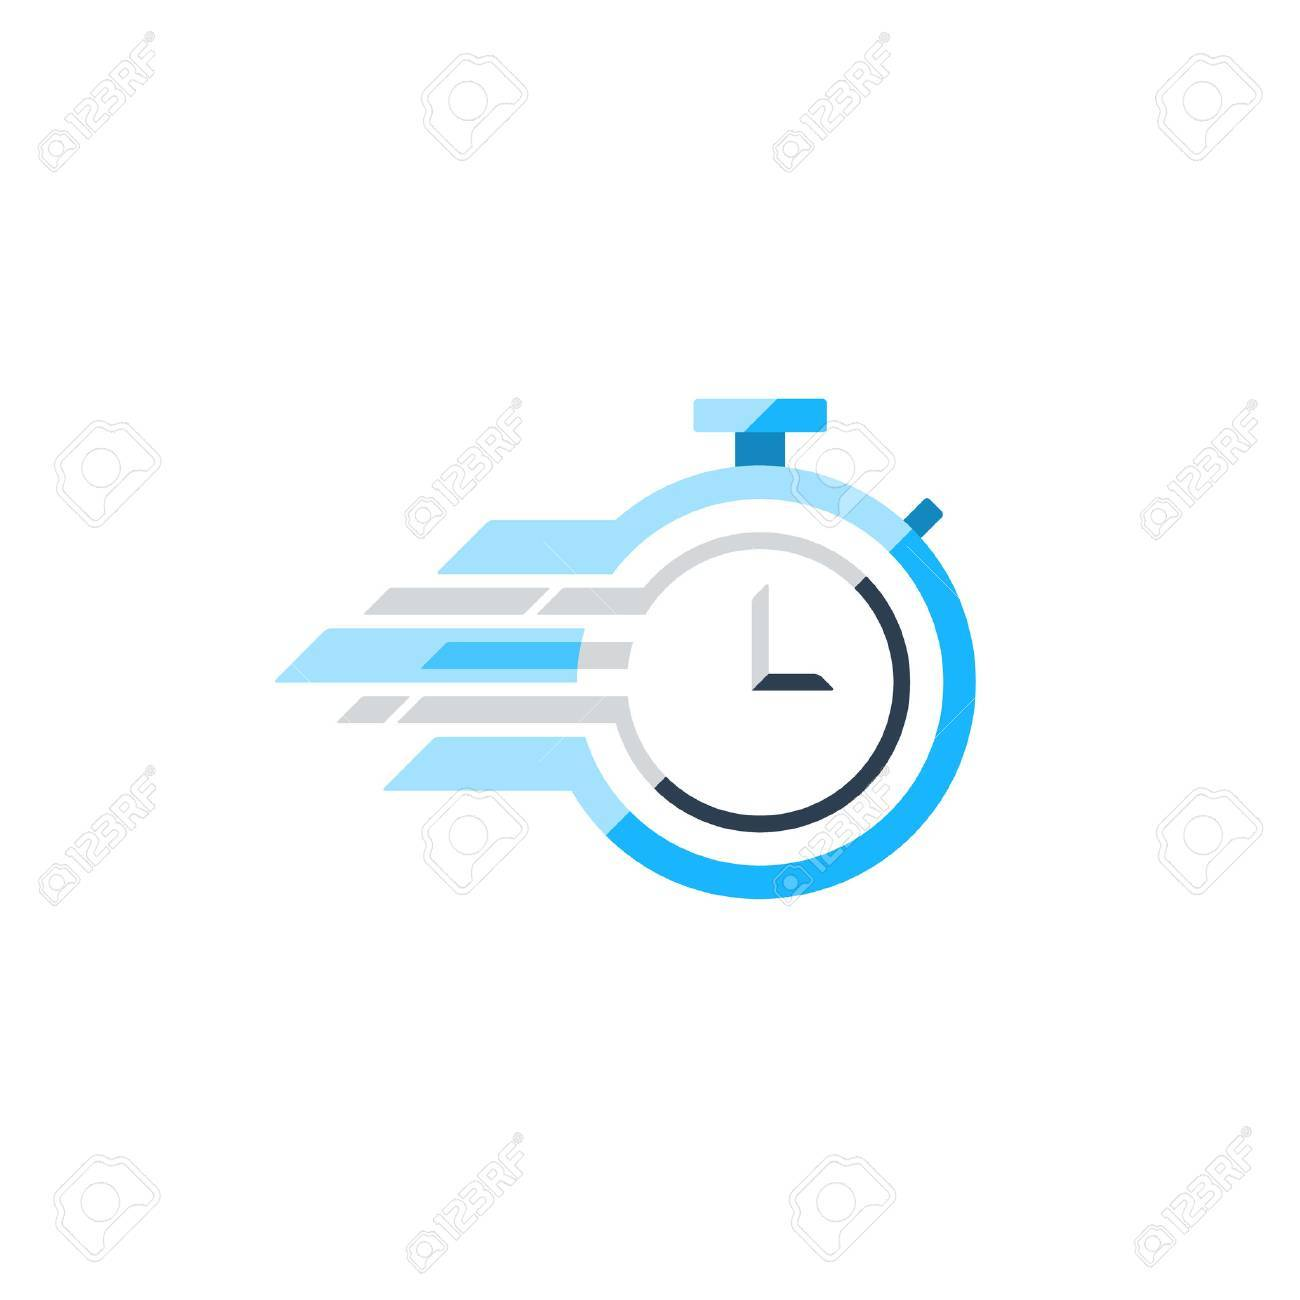 Fast time concept, rush hour , training session icon. Flat design illustration - 61093708